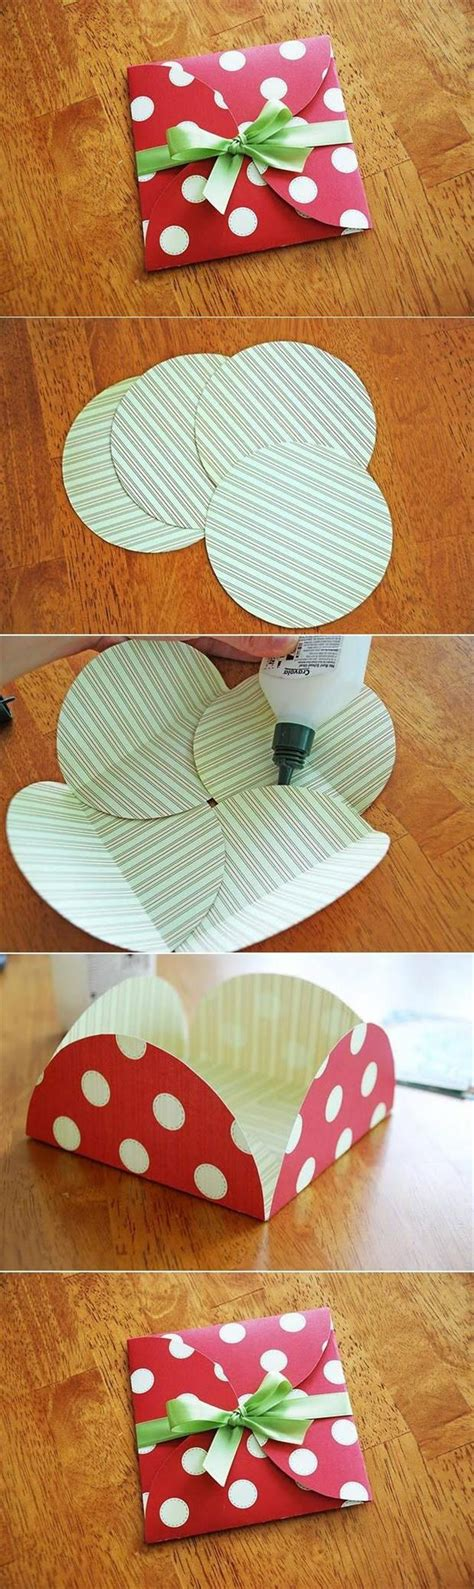 do it yourself crafts simple do it yourself craft ideas 70 pics